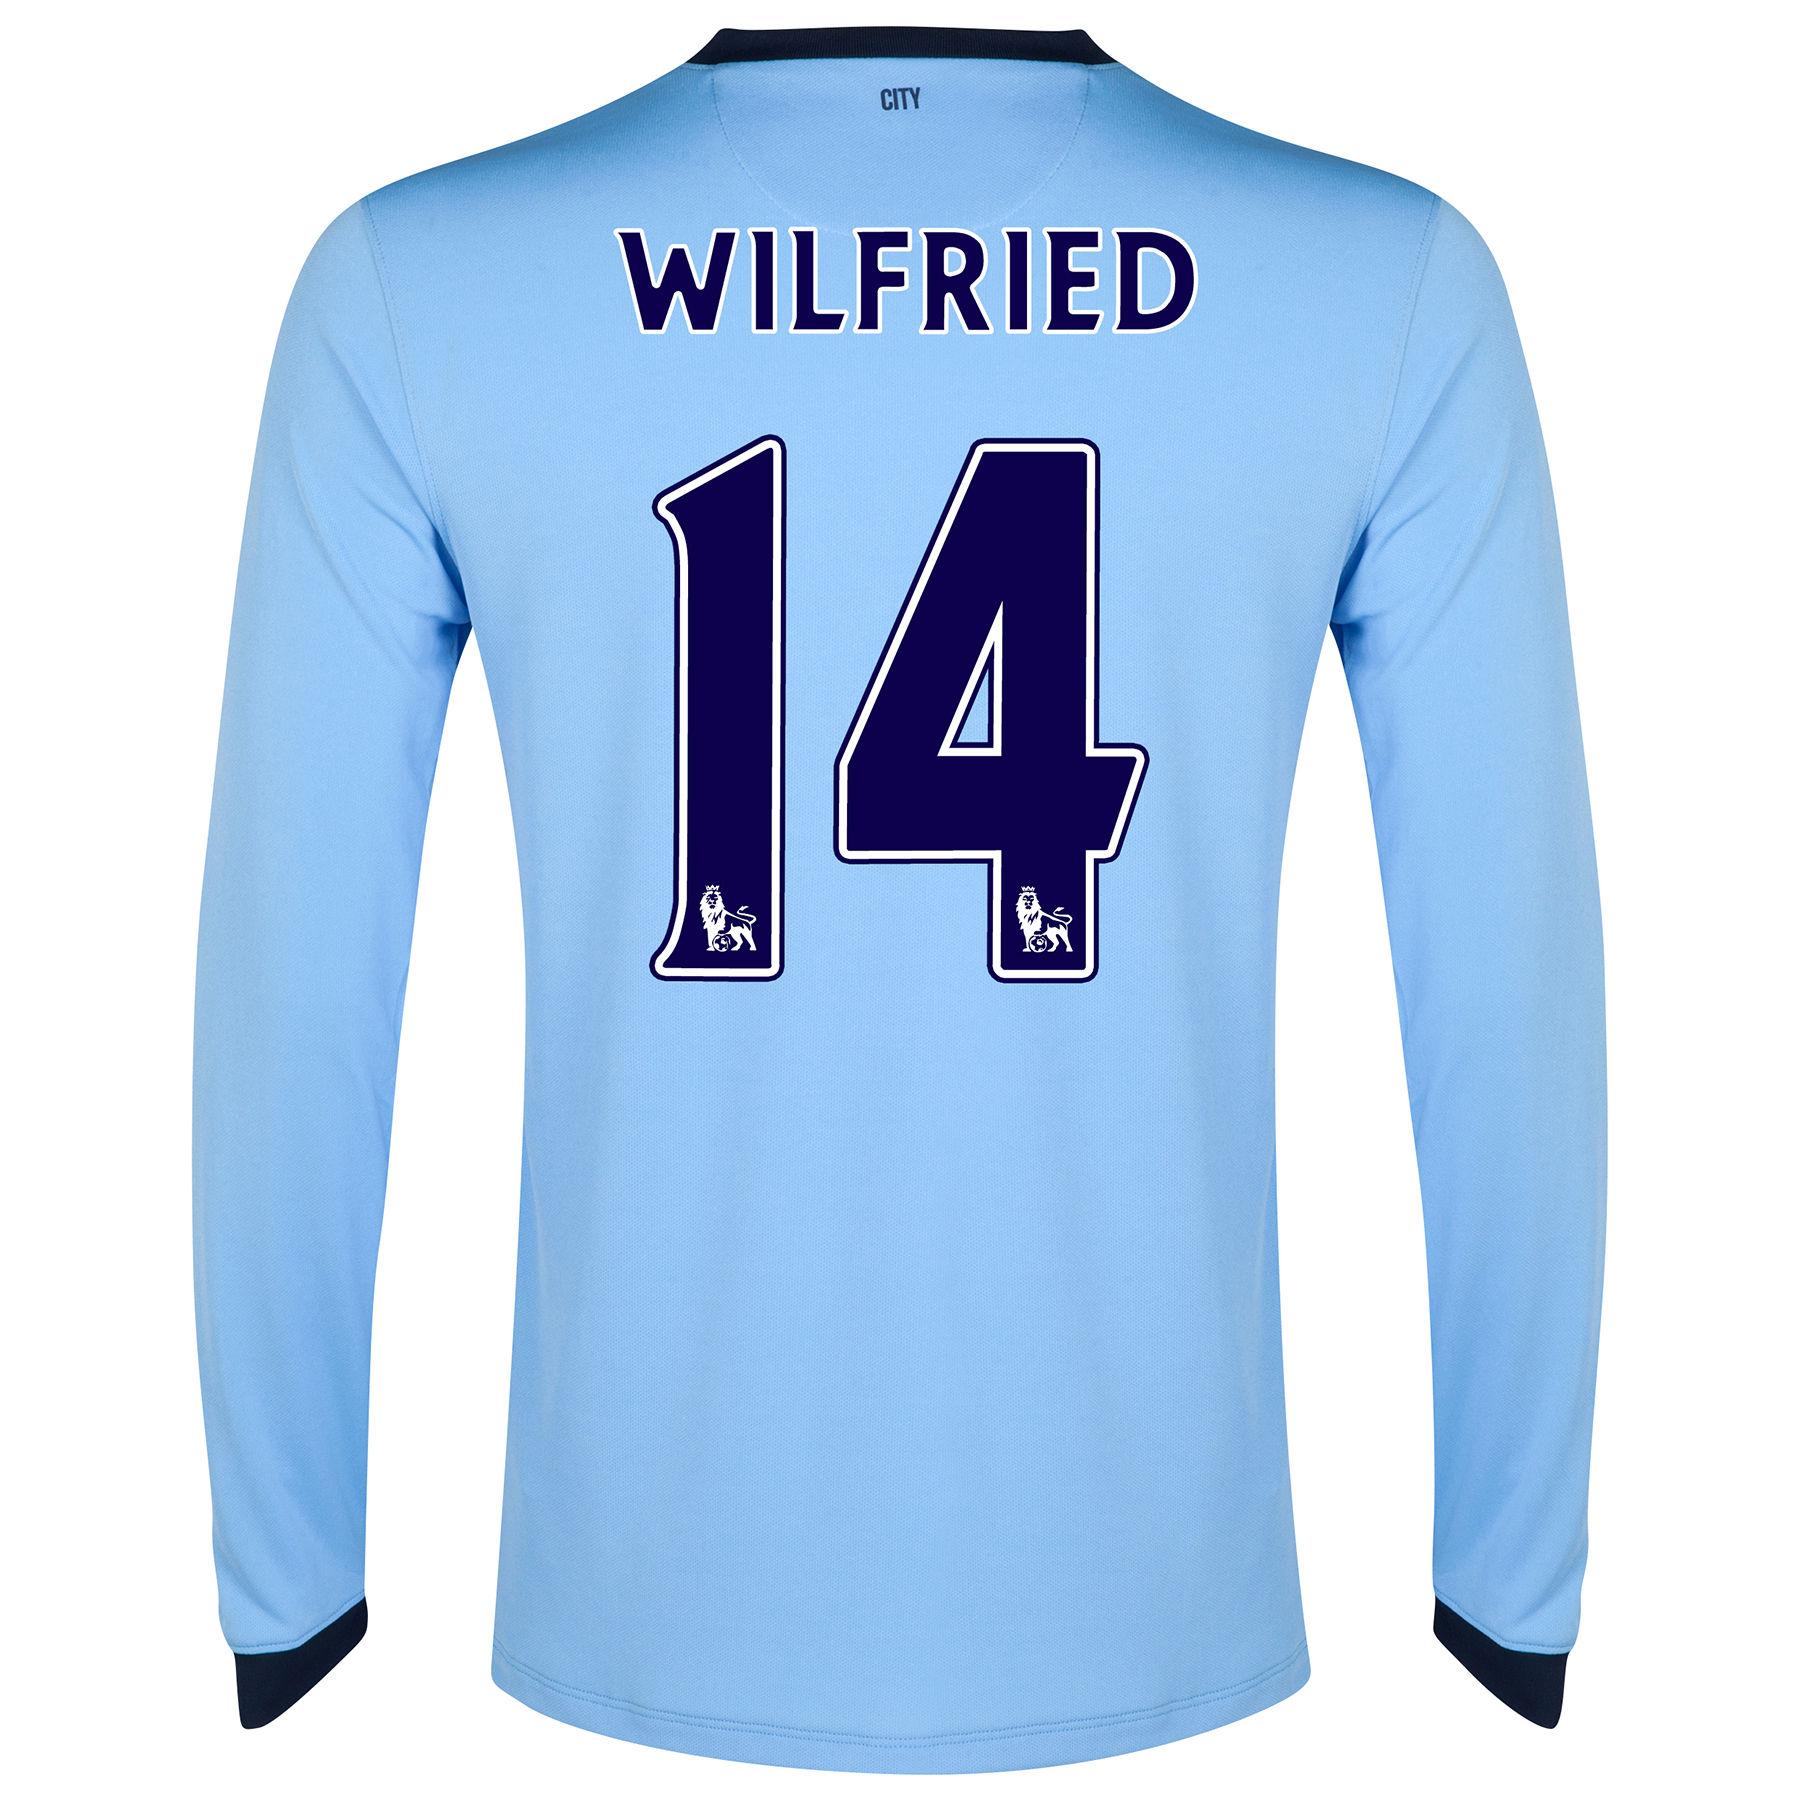 Manchester City Home Shirt 2014/15 - Long Sleeve Sky Blue with Wilfried 14 printing